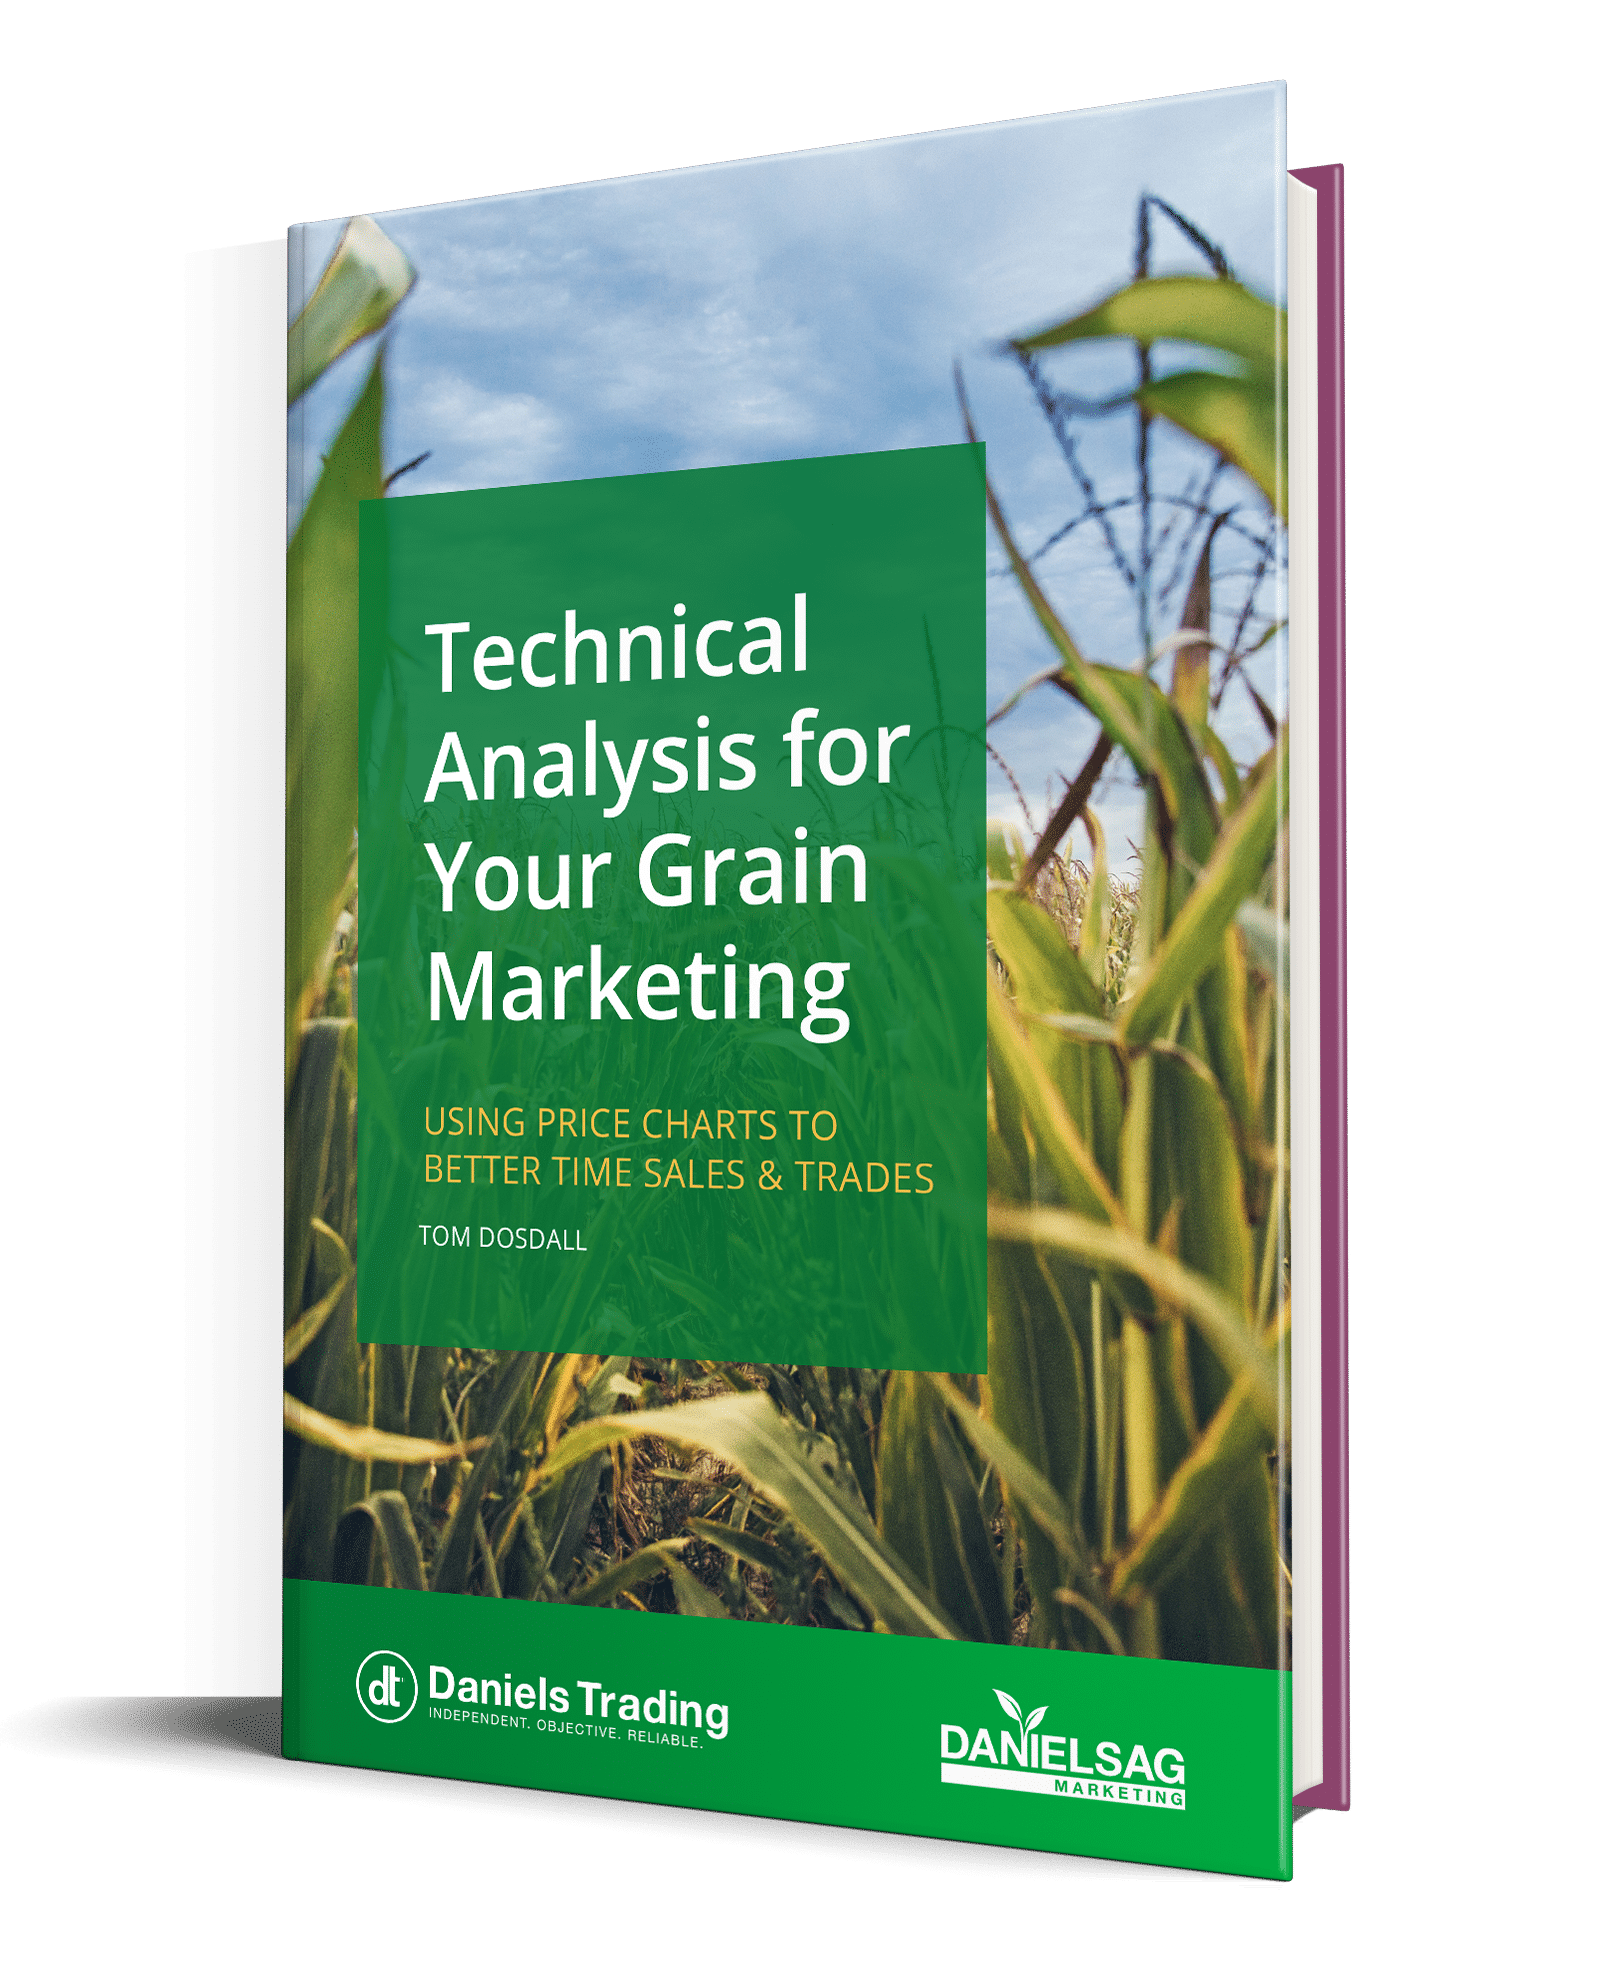 Technical Analysis for Your Grain Marketing: Using Price Charts to Better Time Sales and Trades